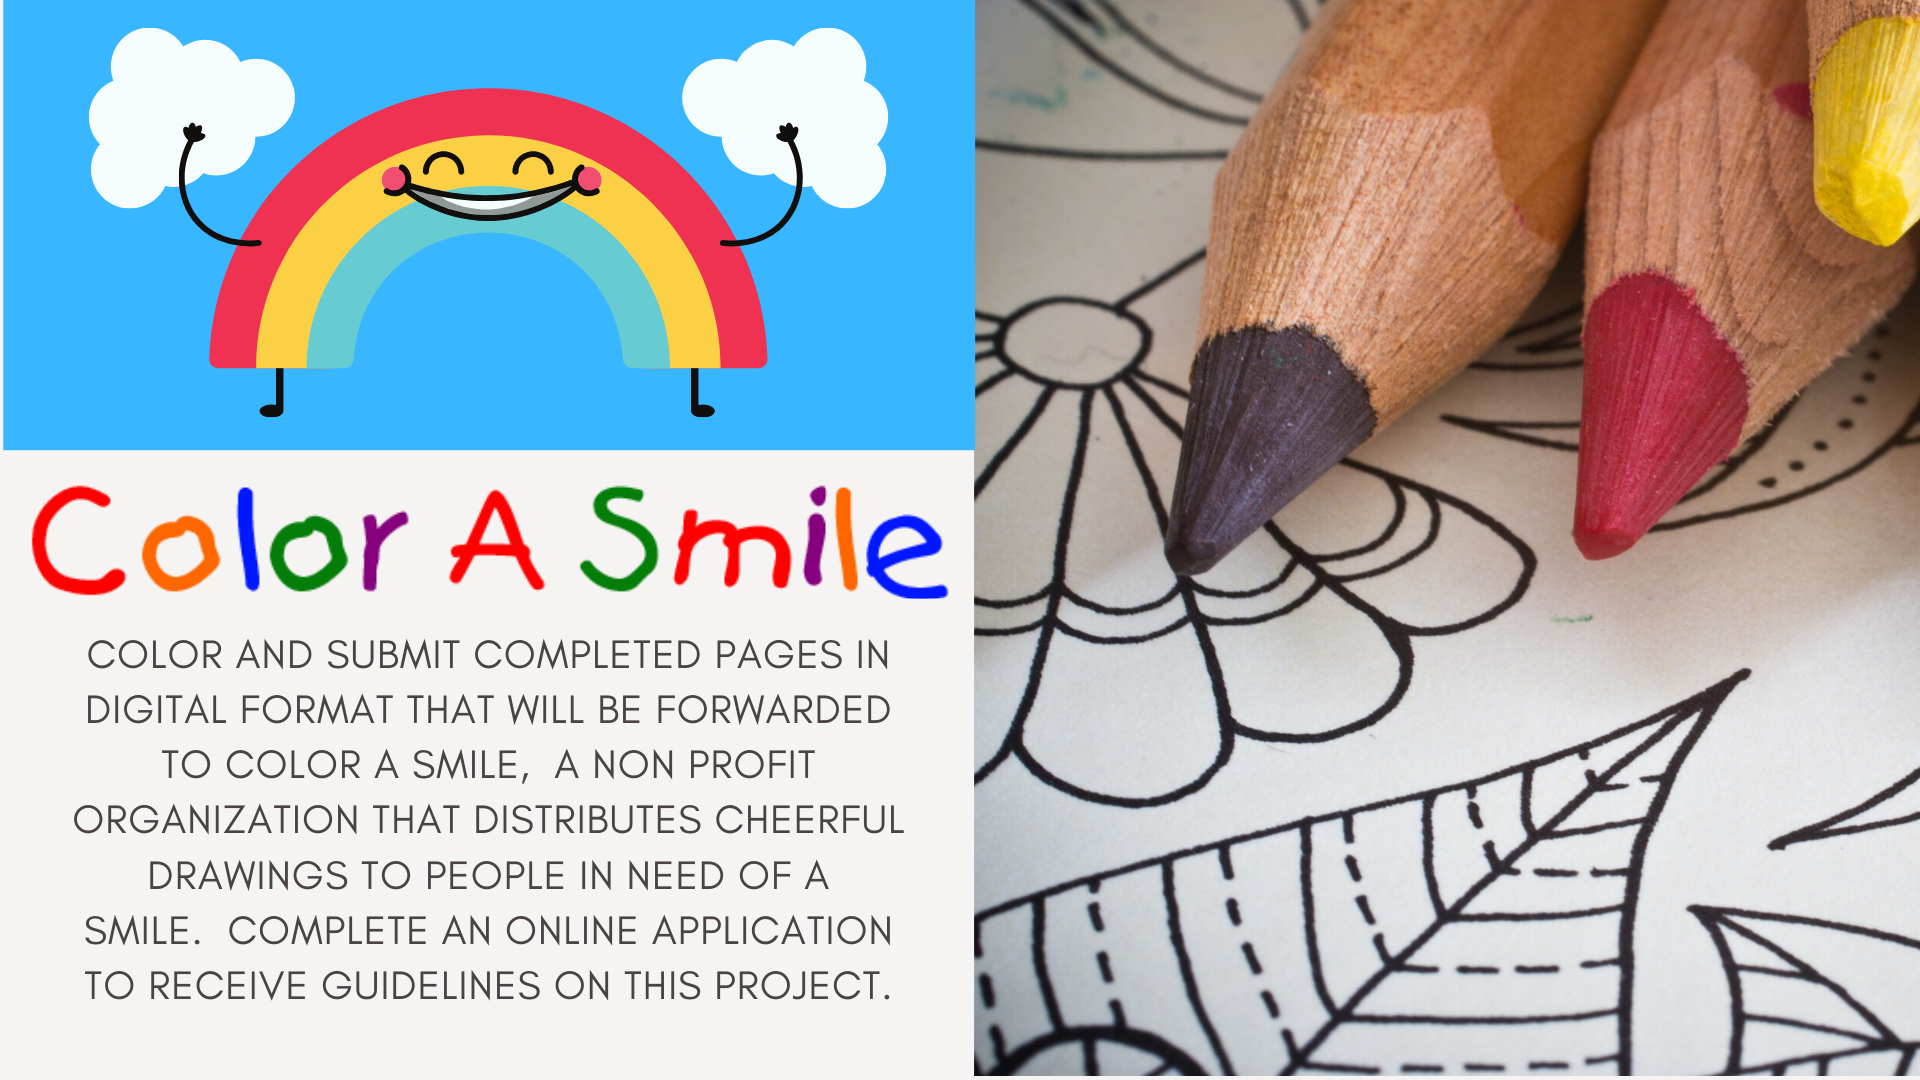 Color a Smile